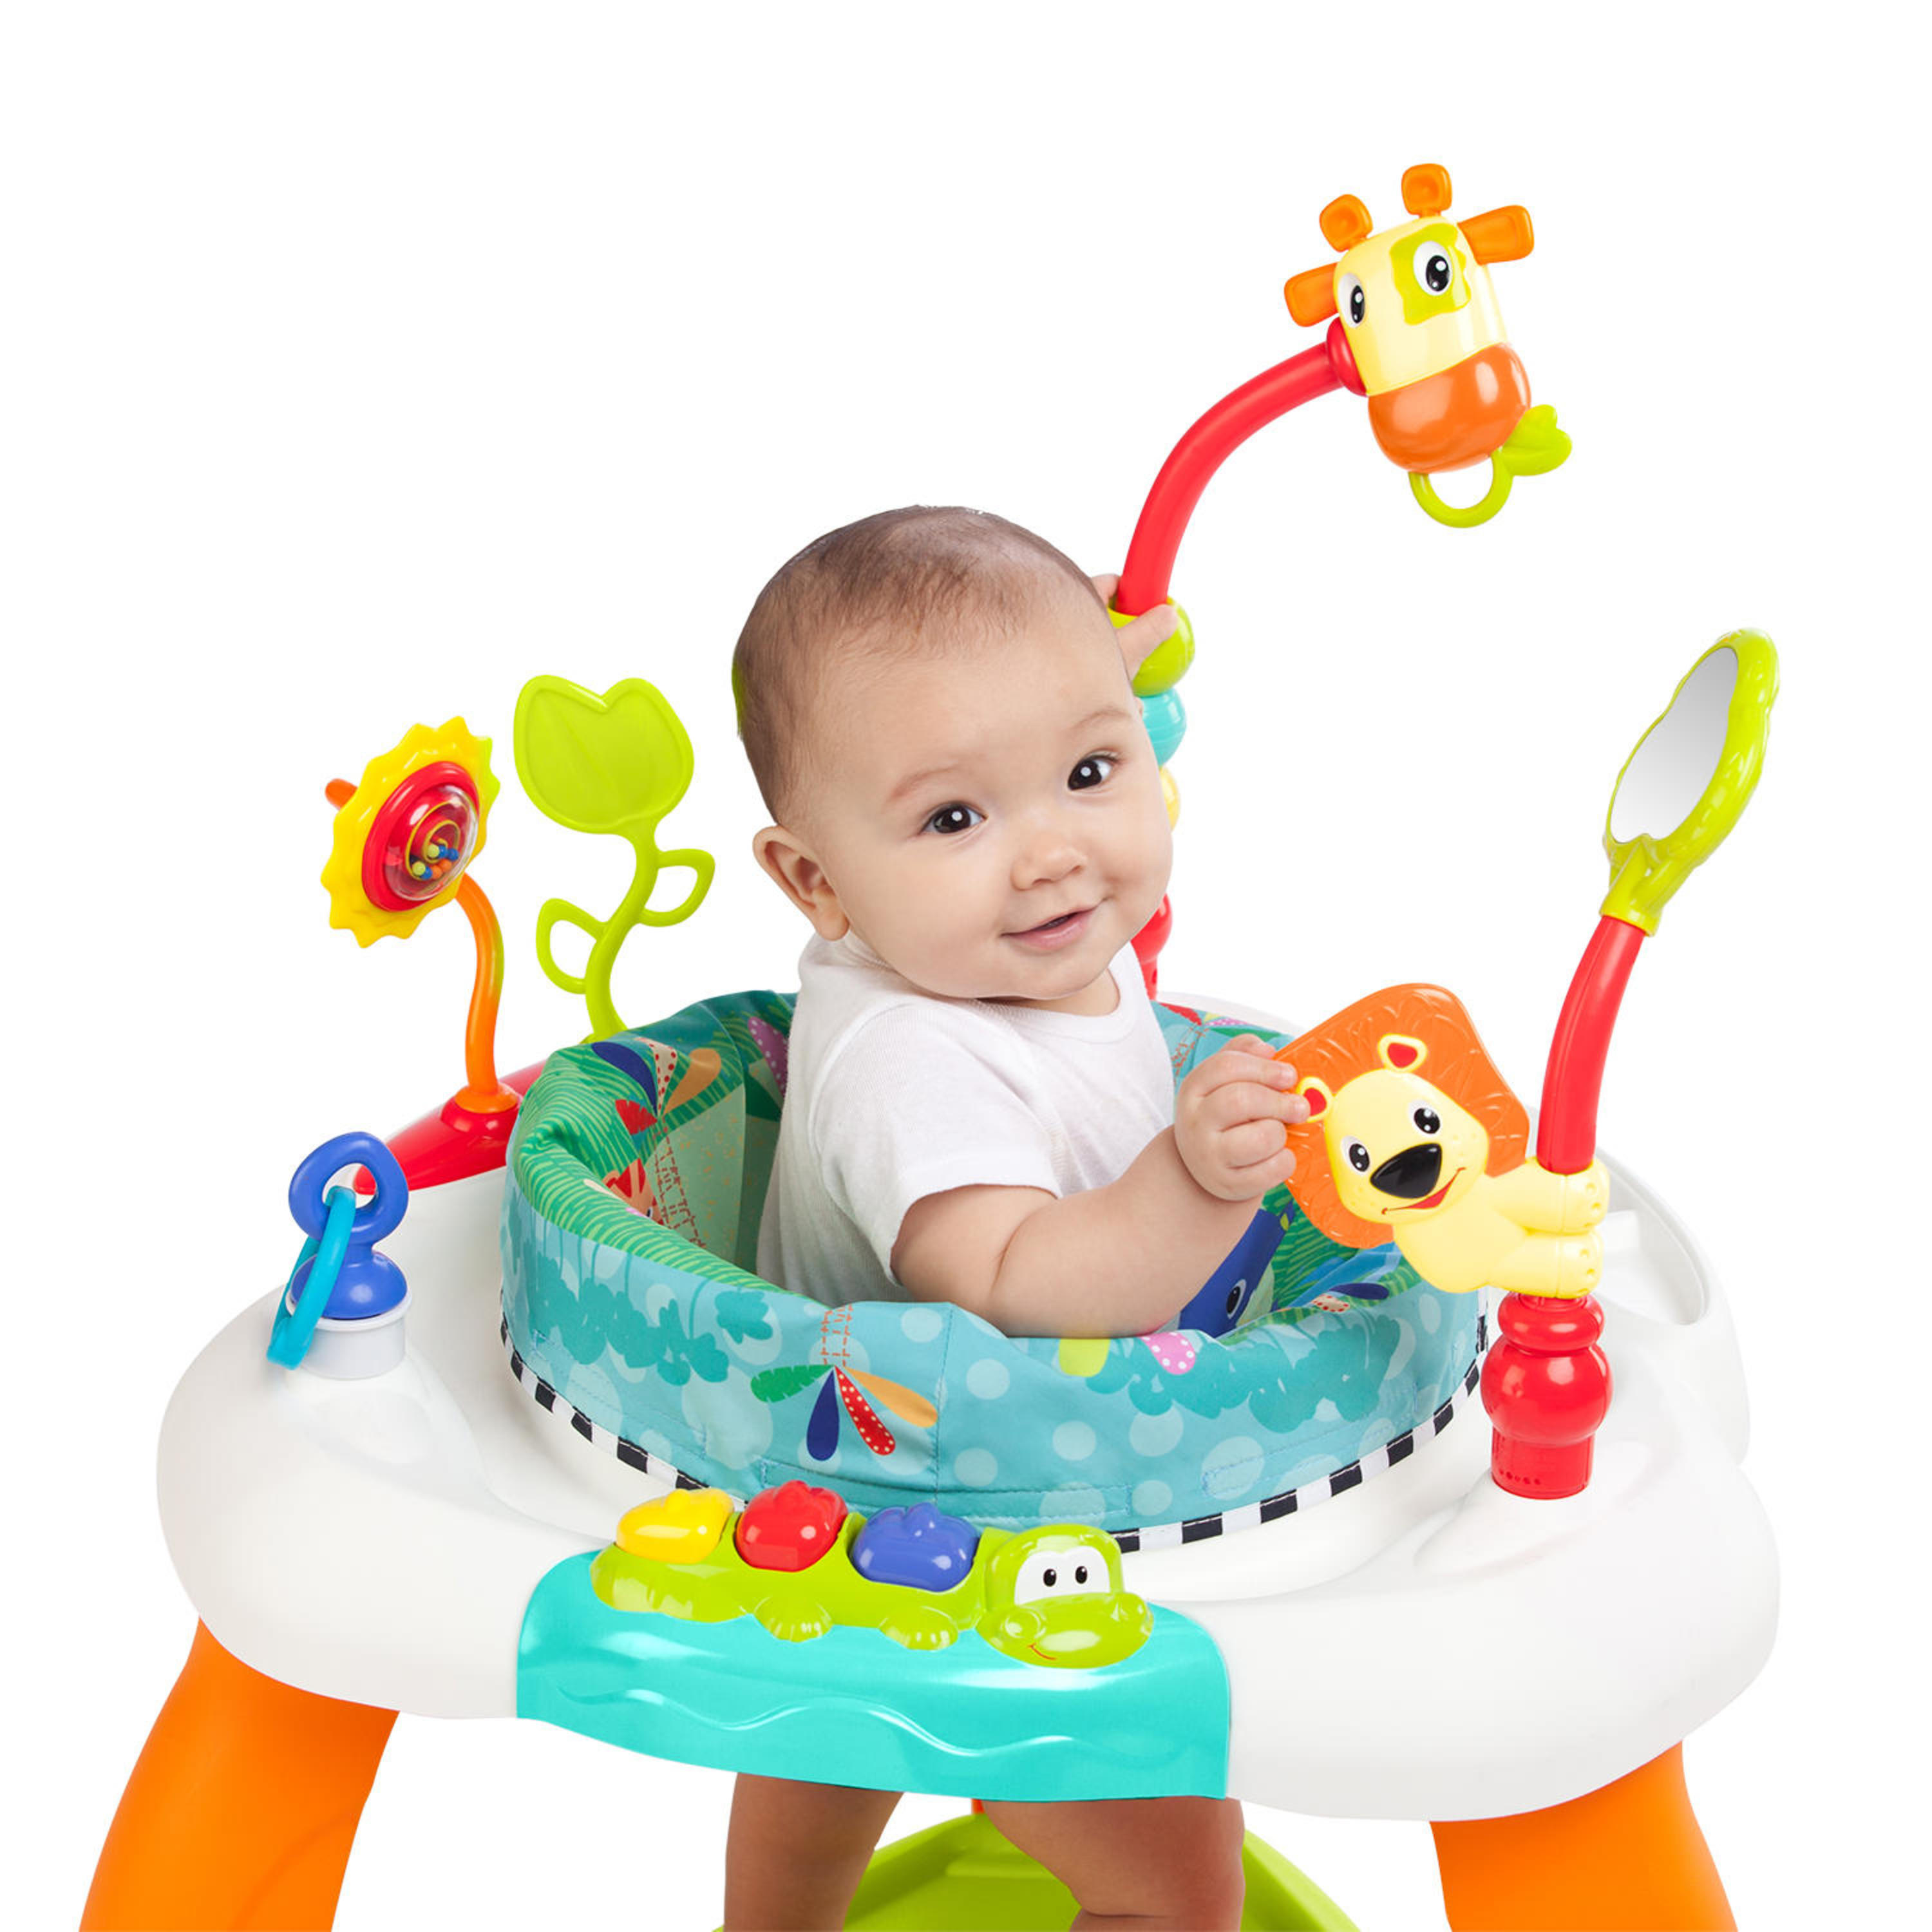 Baby Activity Center Details About Bounce Baby Exercise Bright Starts Activity Center Exersaucer Child Learning